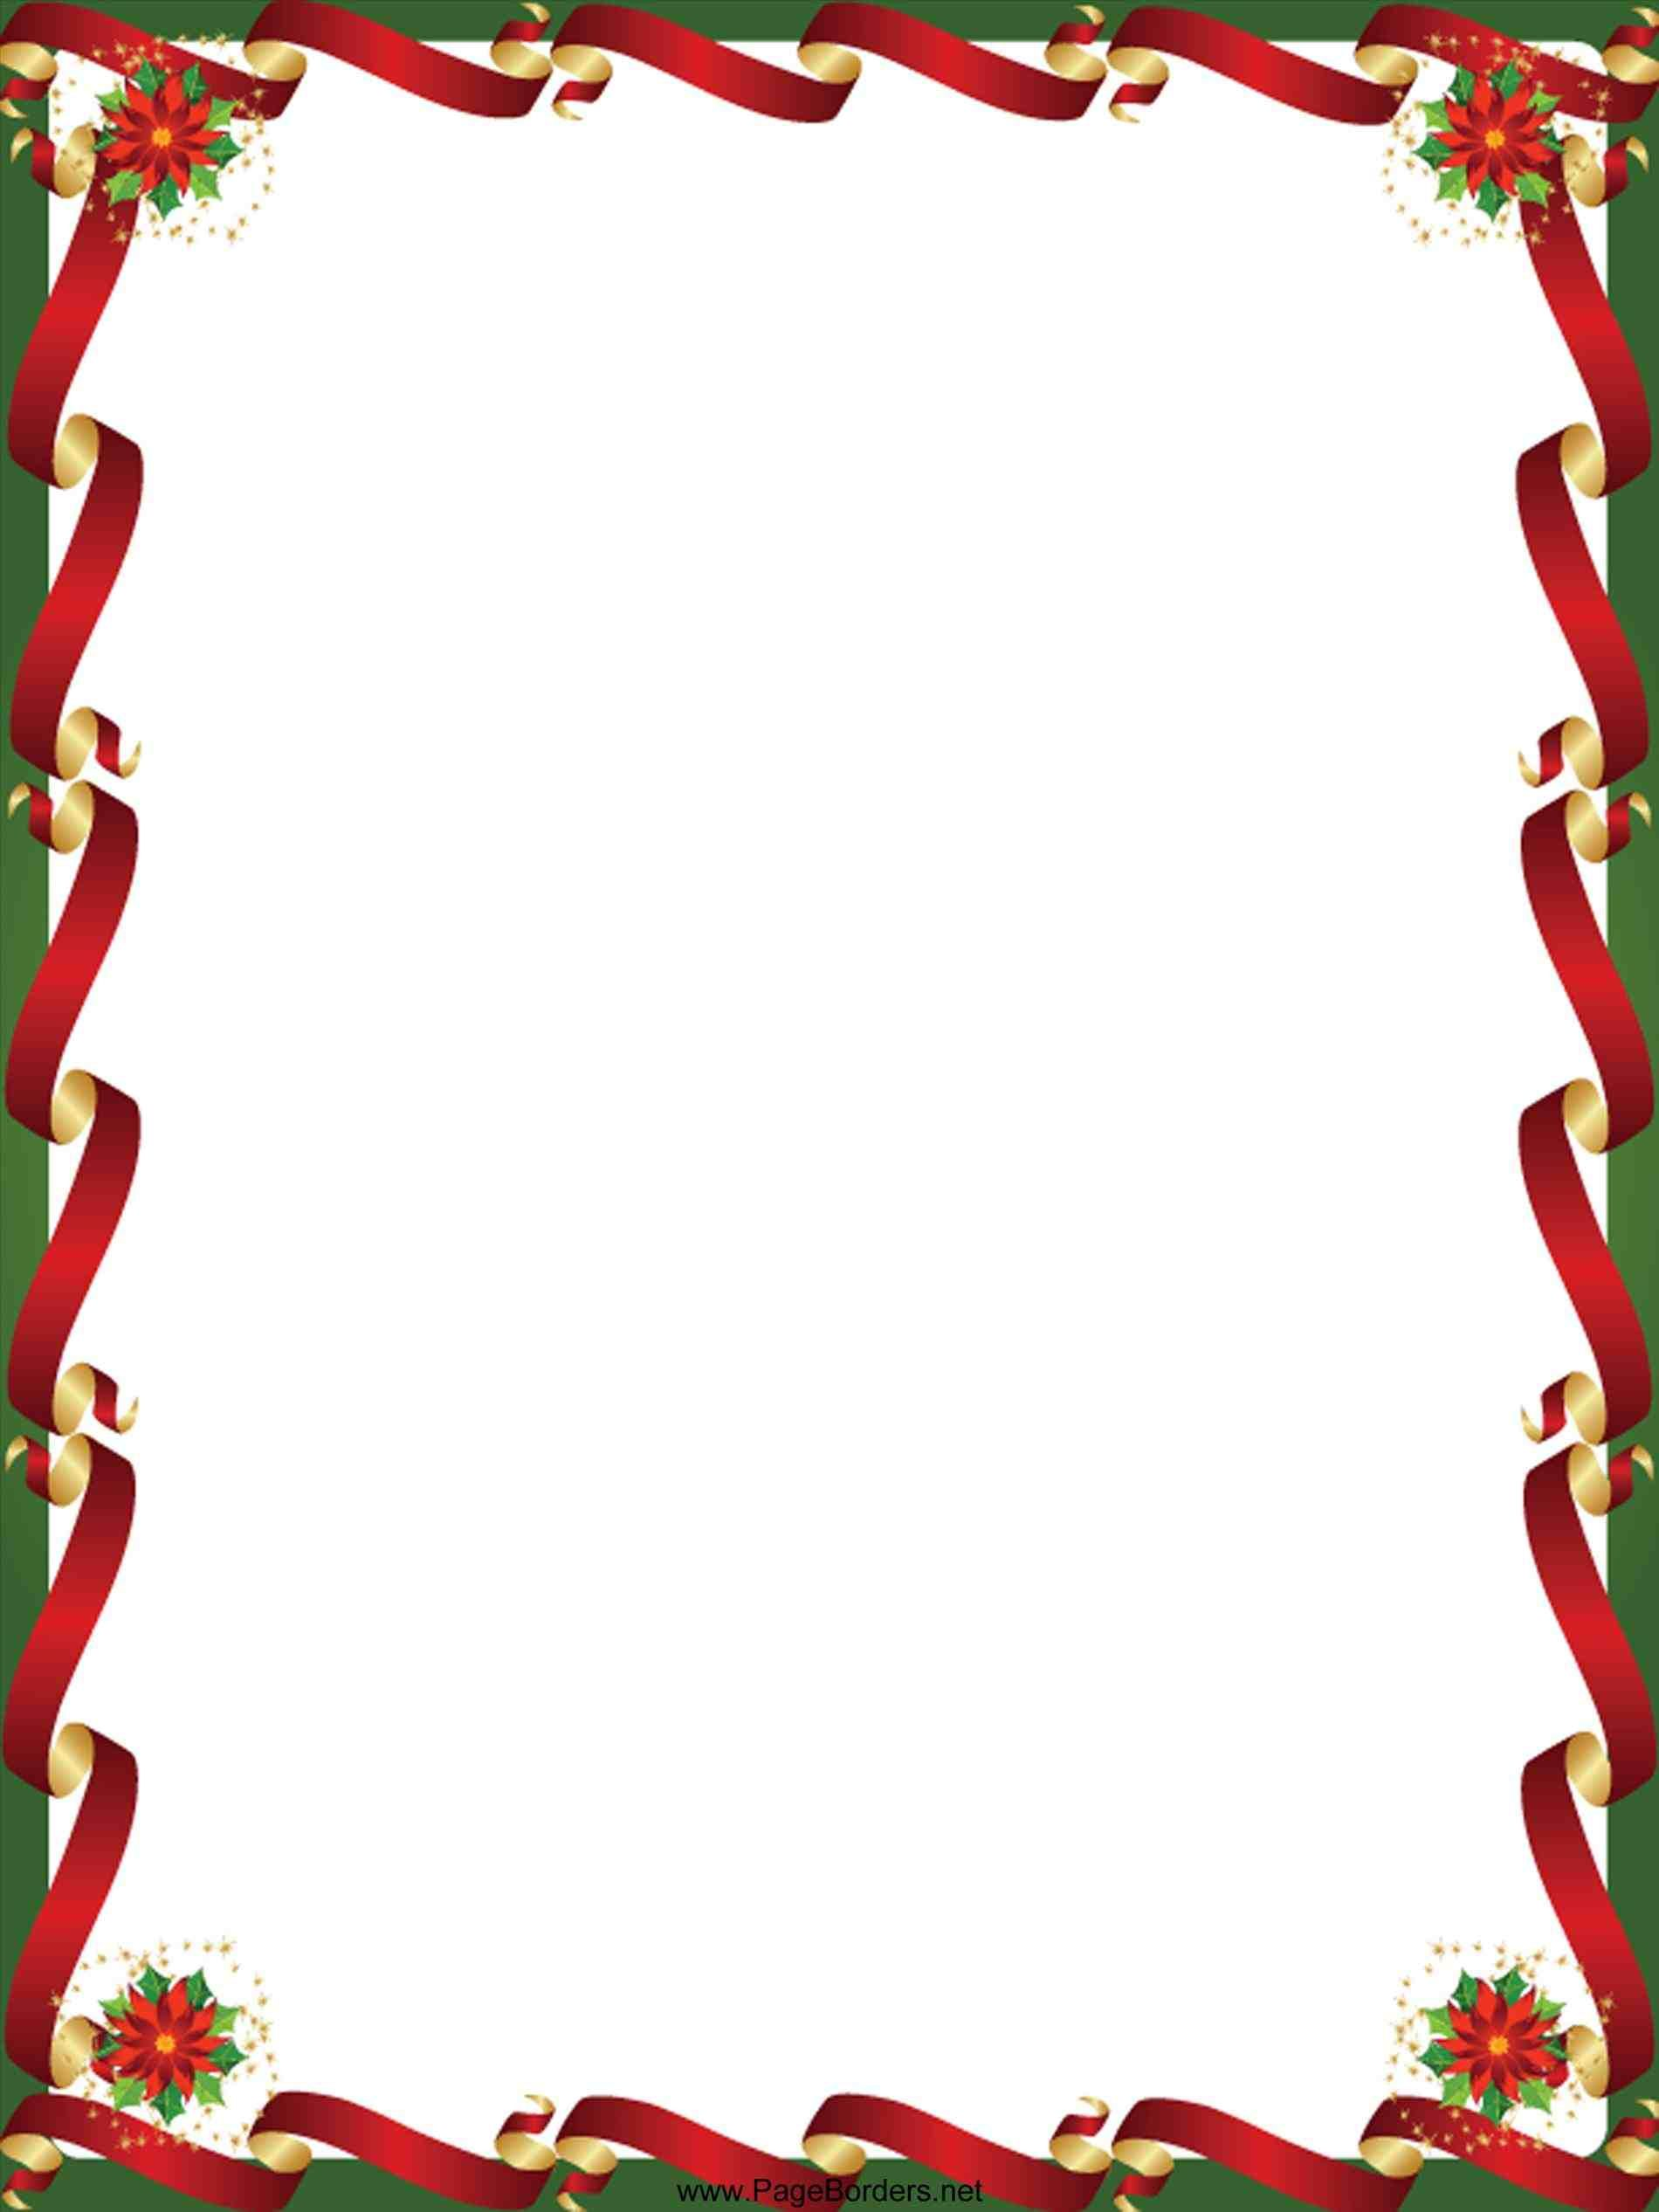 this free christmas border templates download happy new year wallpapers will decorate your computer desktops with celebration cheerfulness and joy happy